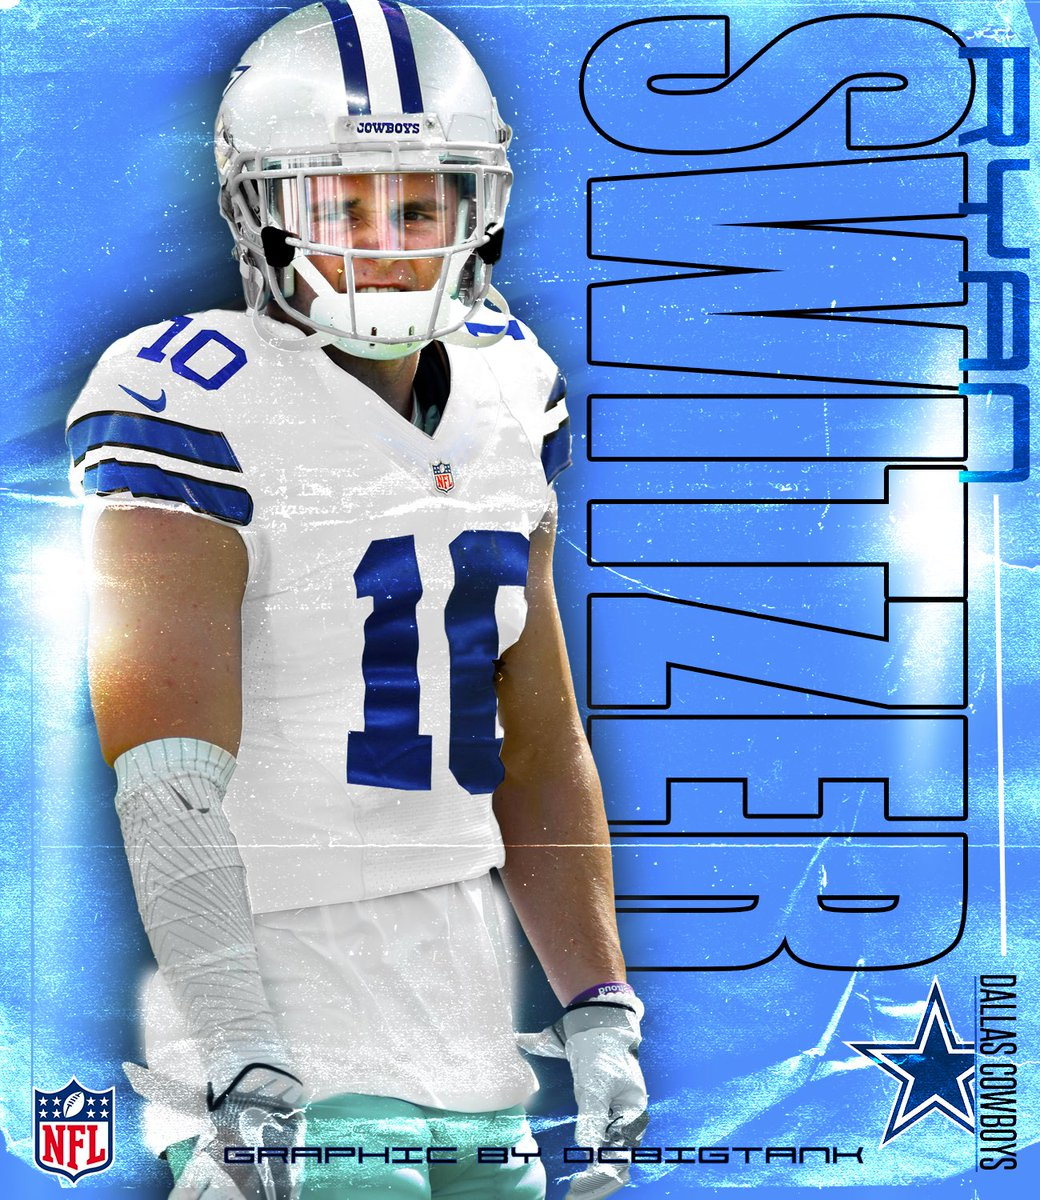 ryan switzer jersey cowboys